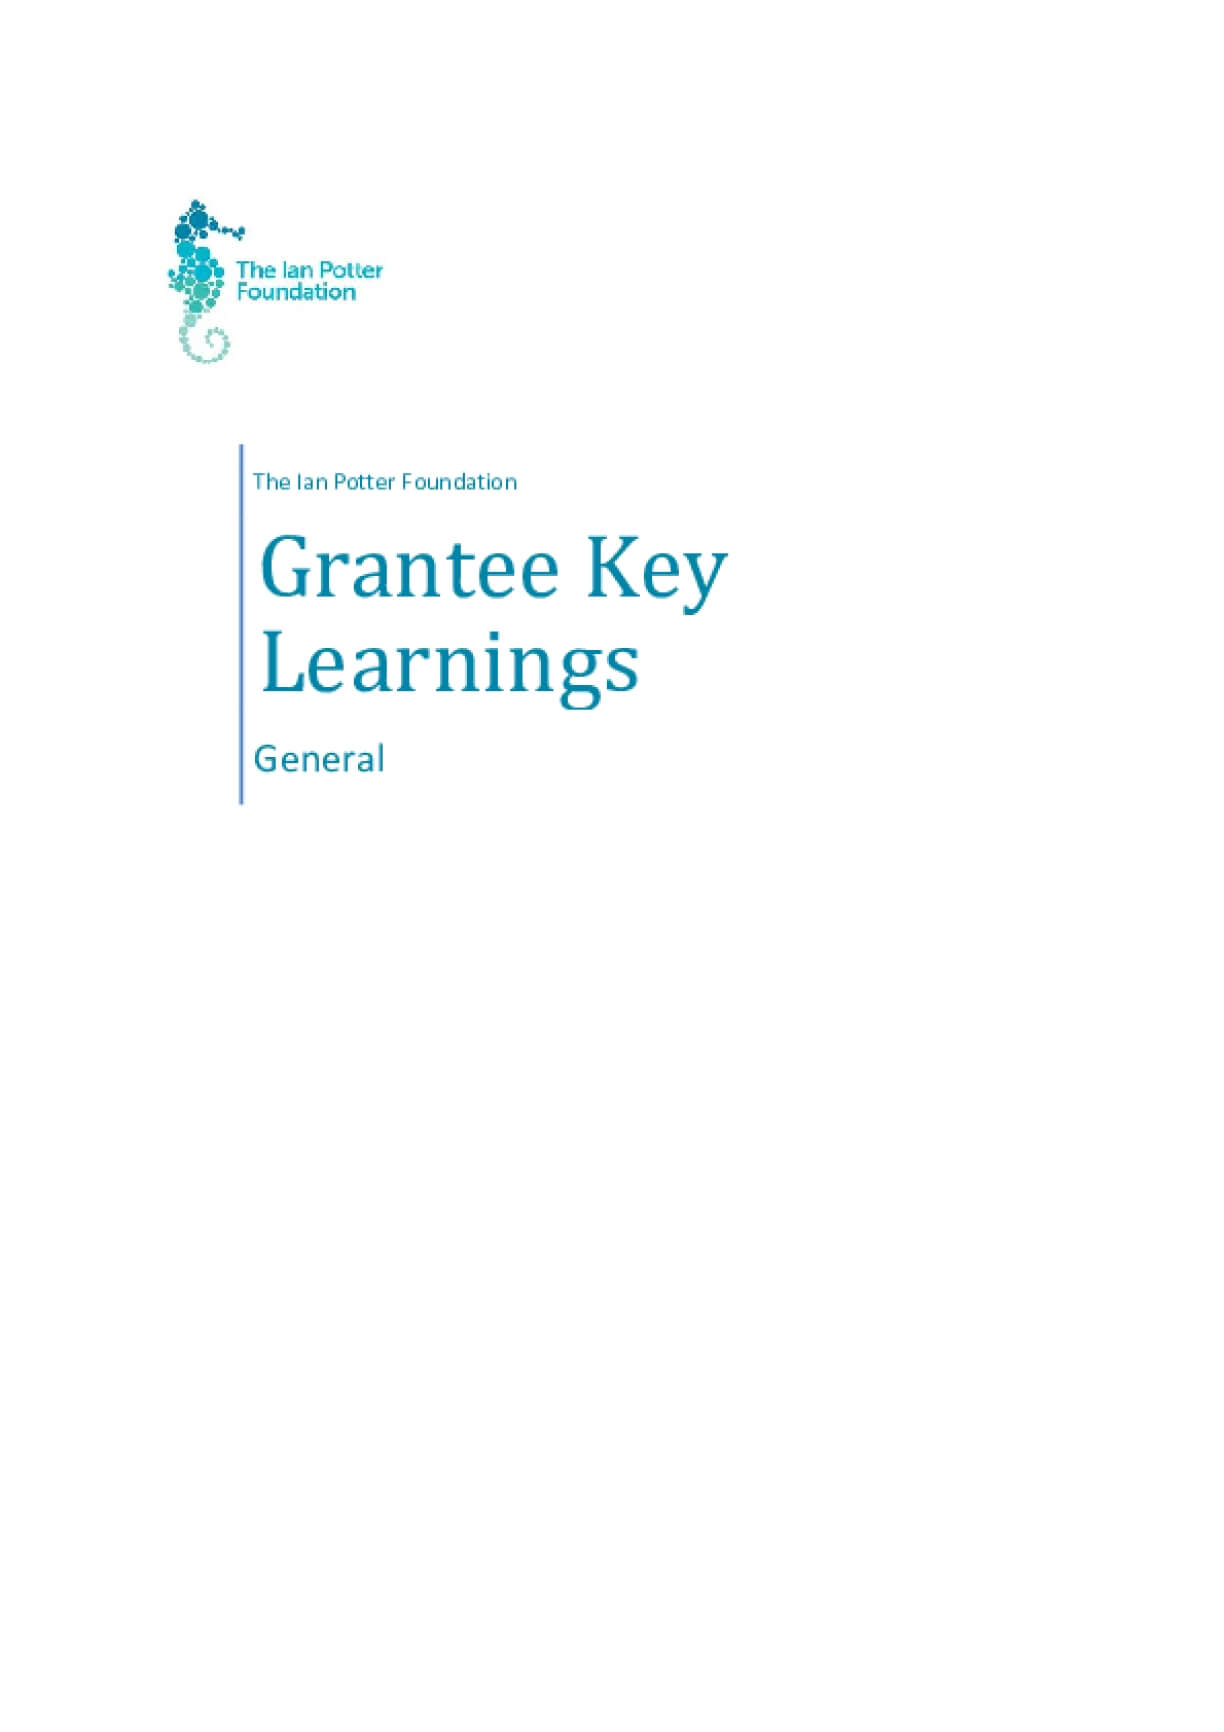 The Ian Potter Foundation Grantee Learnings - General